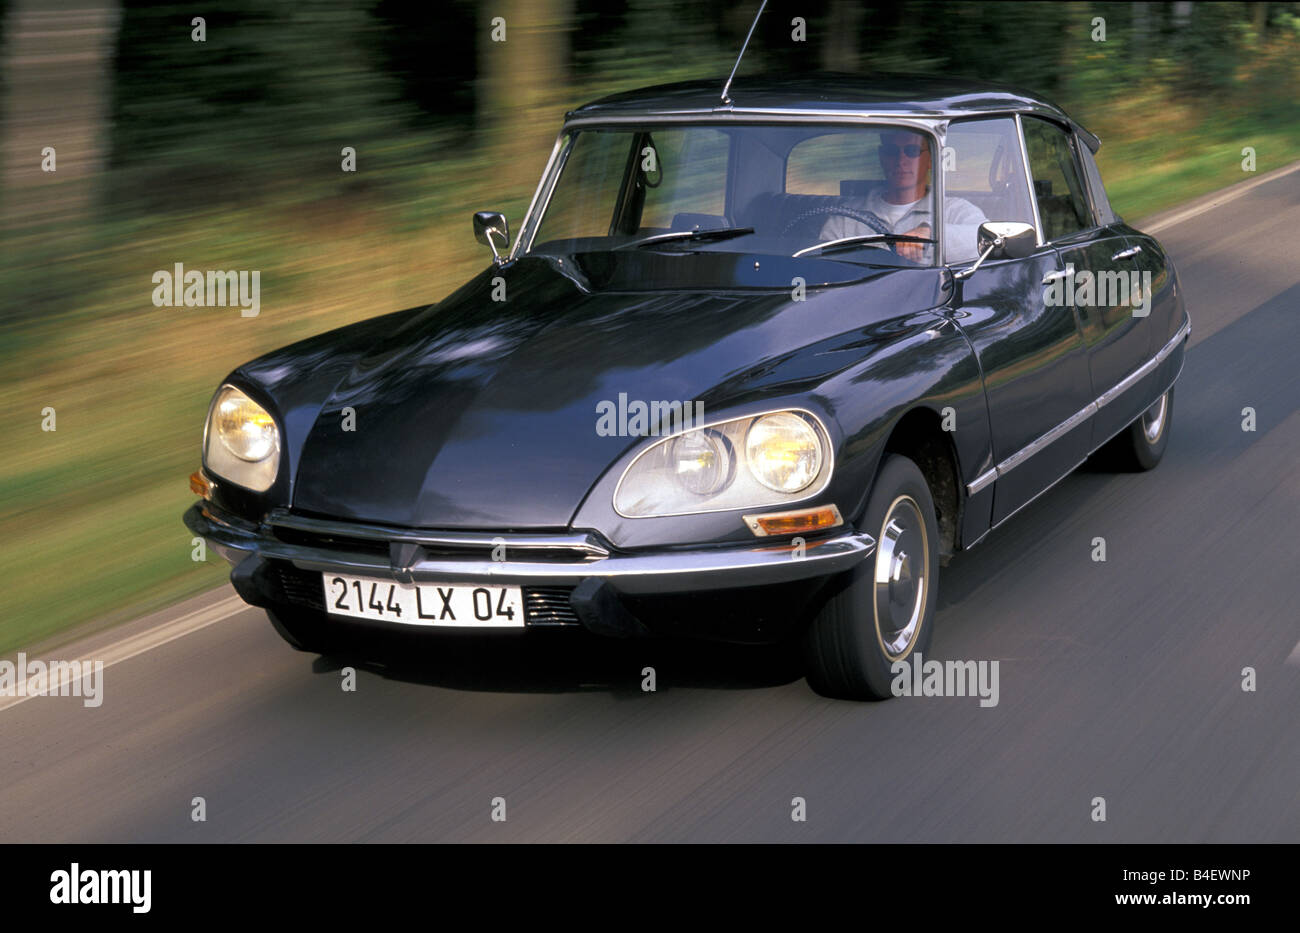 citroen ds 21 photos citroen ds 21 images alamy. Black Bedroom Furniture Sets. Home Design Ideas